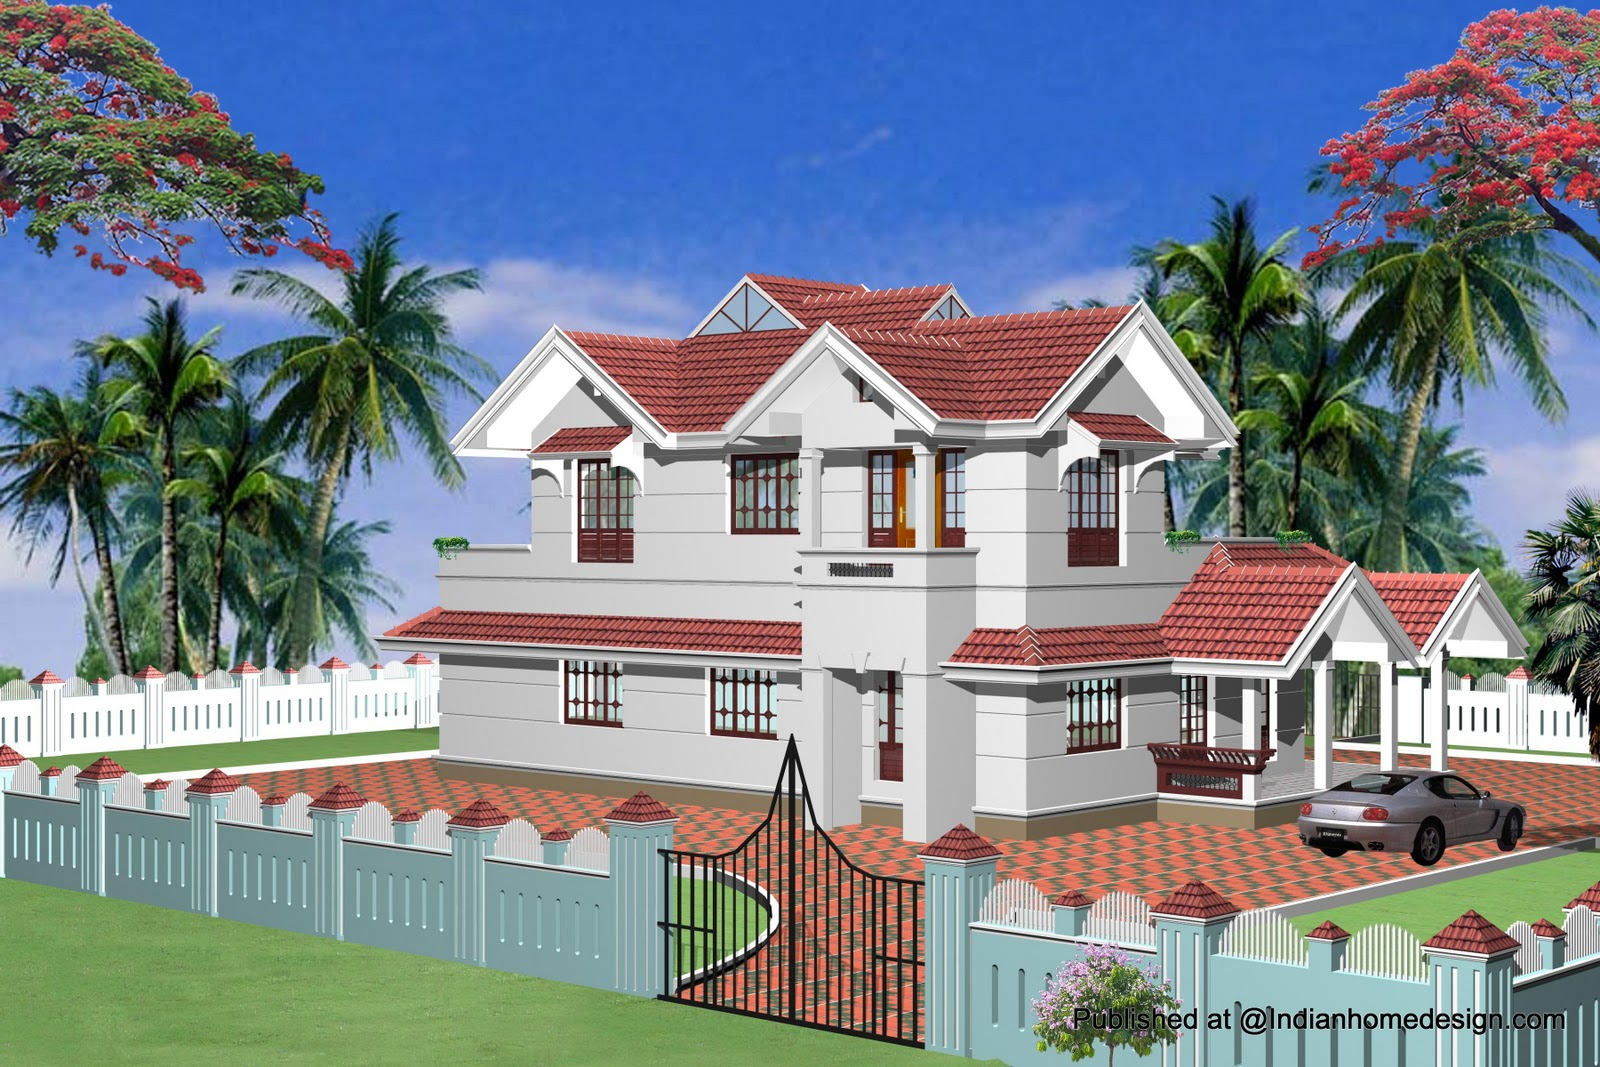 Architectural house plans india omahdesigns net for Indian house design architect